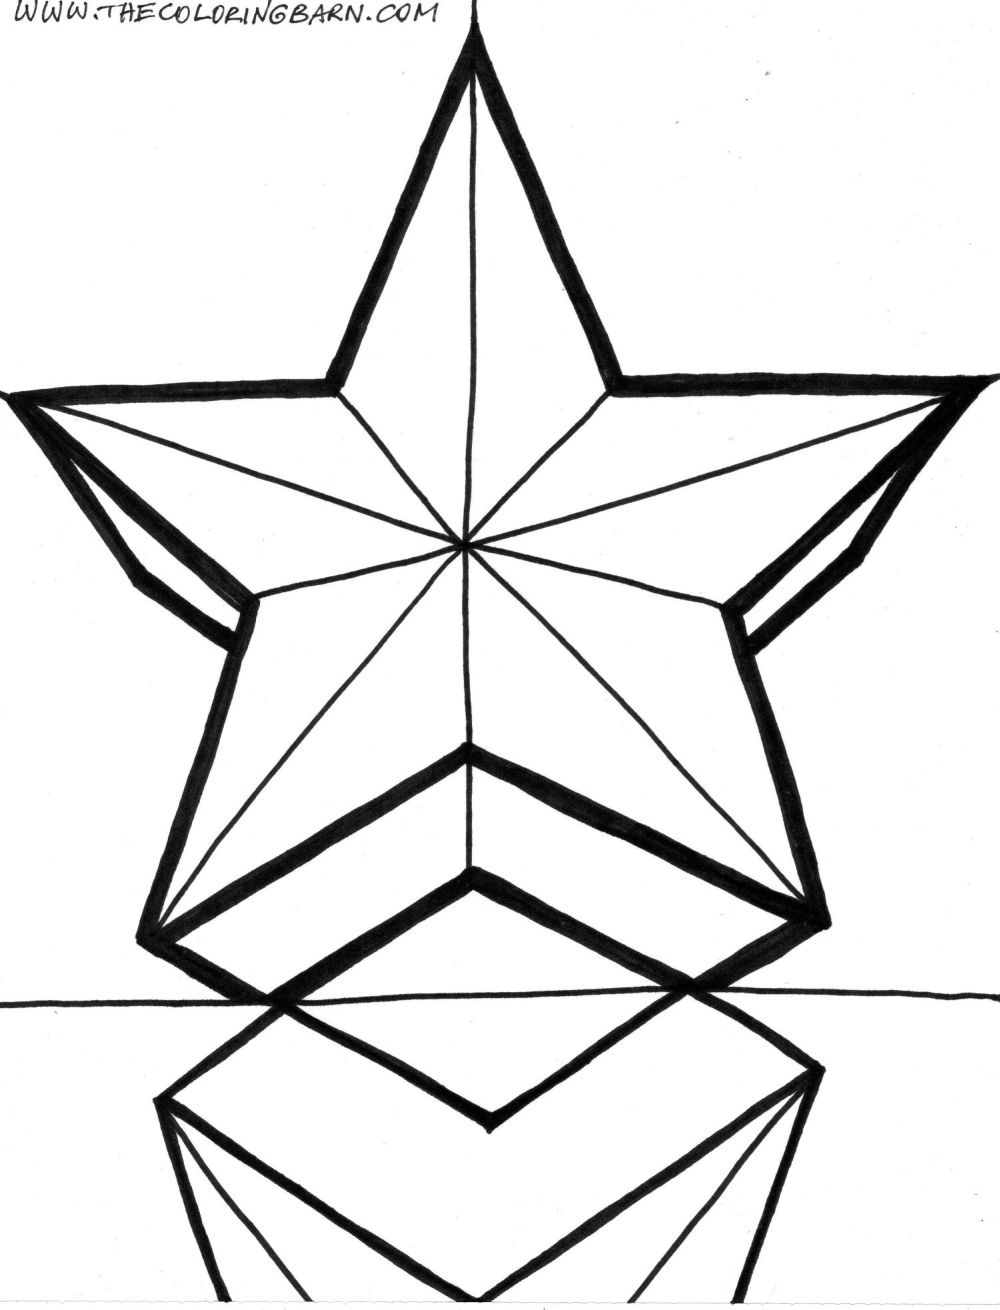 Star Color Sheet | Free Coloring Pages On Masivy World - Coloring Home - Free Printable Christmas Star Coloring Pages